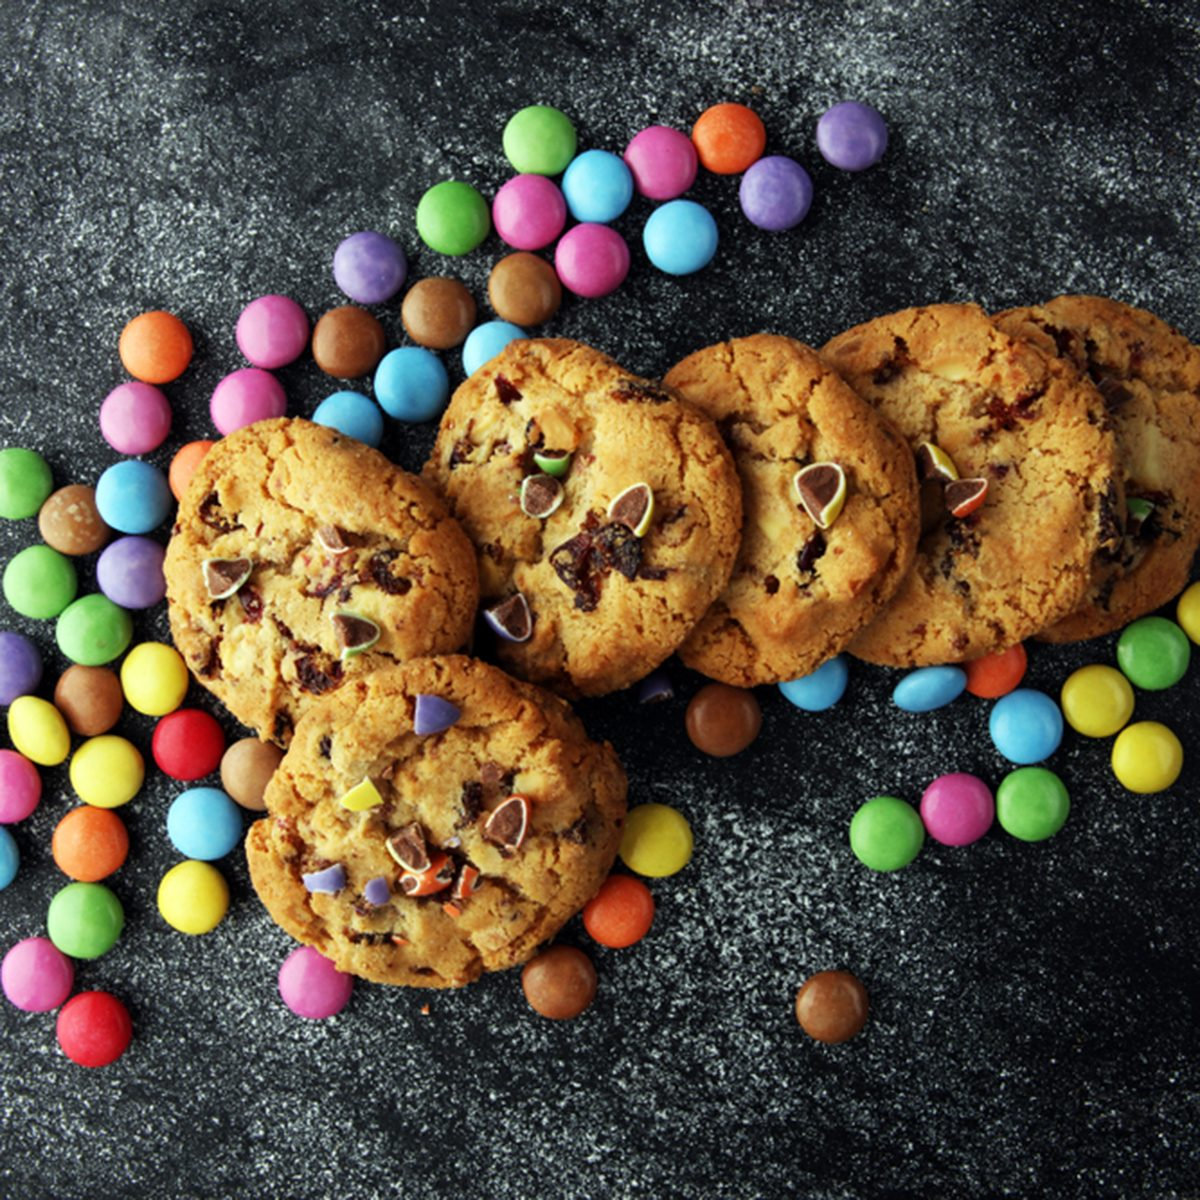 Chocolate cookies with colorful candies.